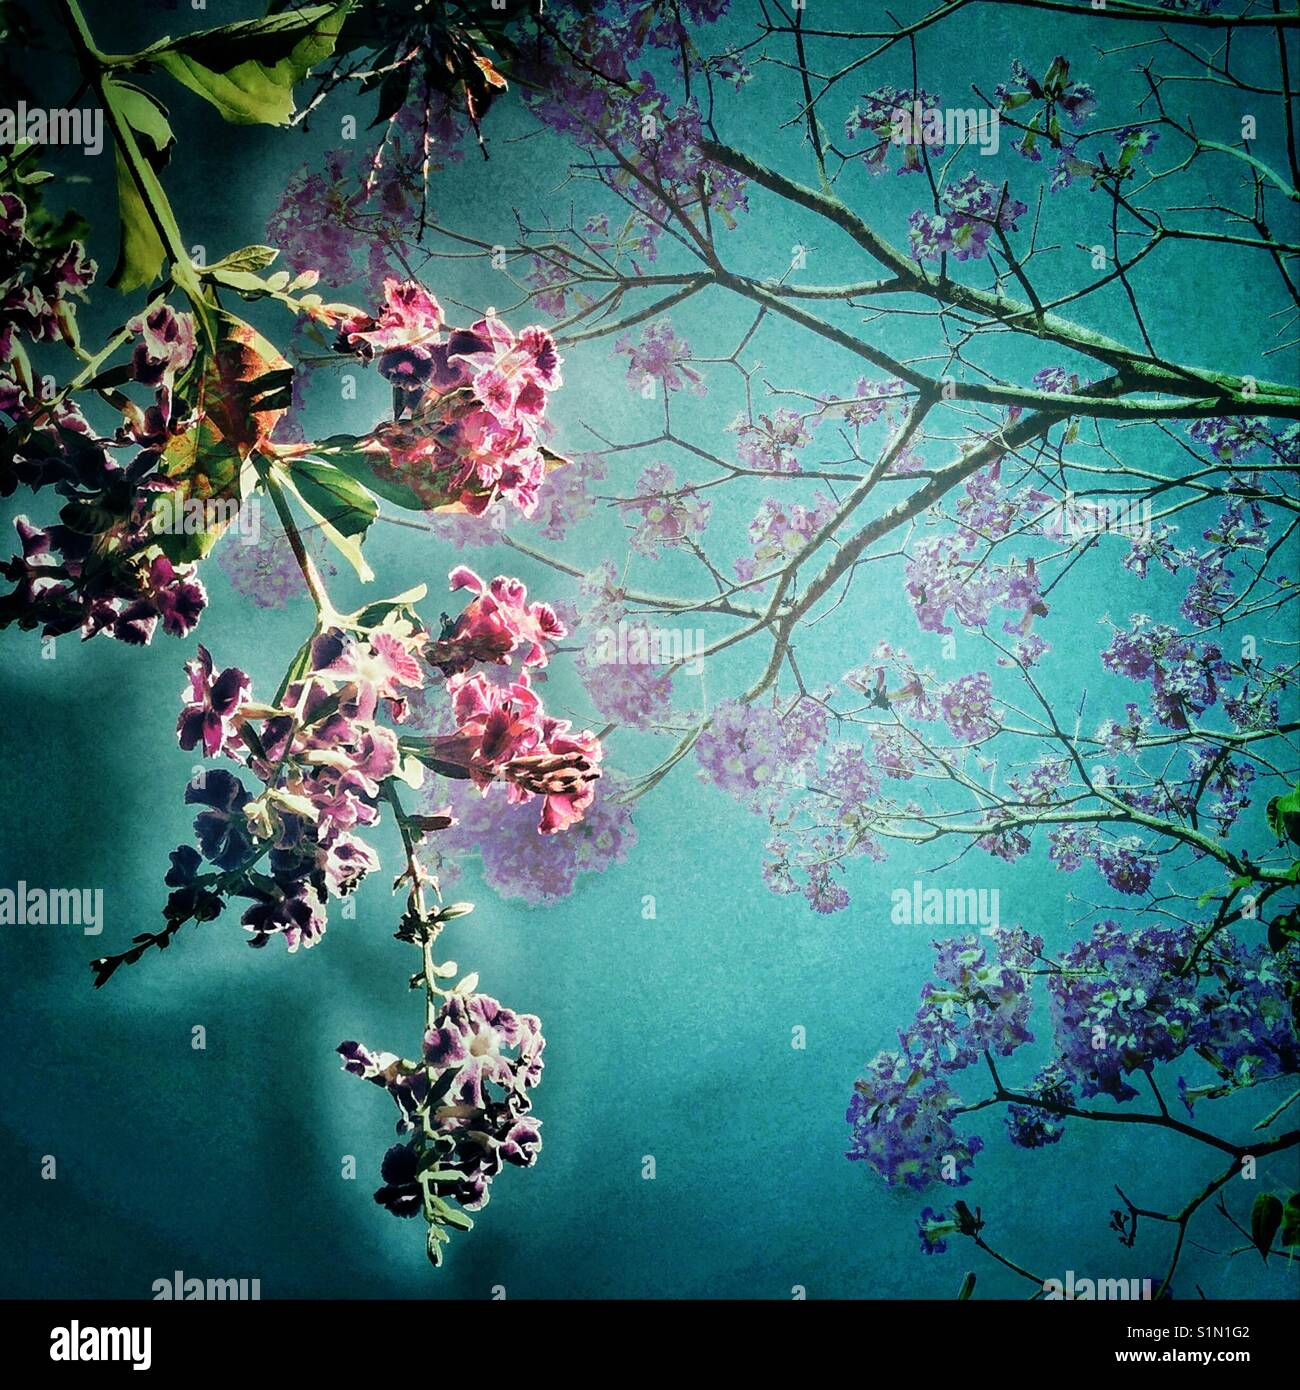 Teal Cieli E Fiori Viola Iphone Foto Tree Sfondo Closeup Di Un